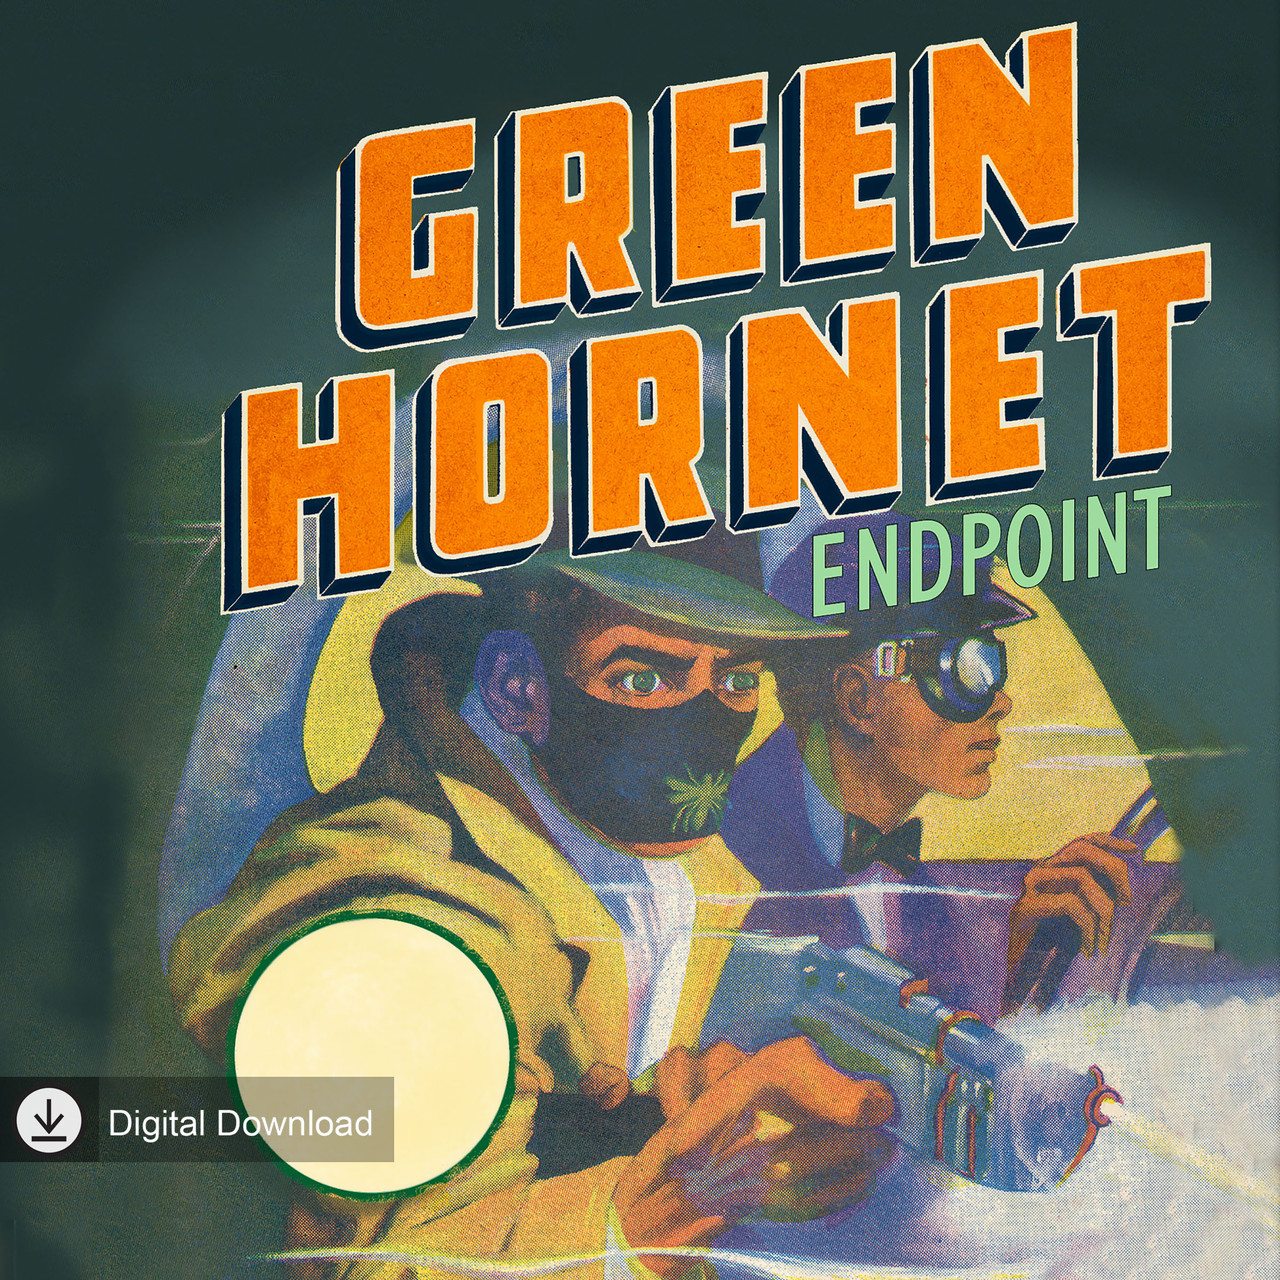 The Green Hornet: Endpoint (MP3 Download)